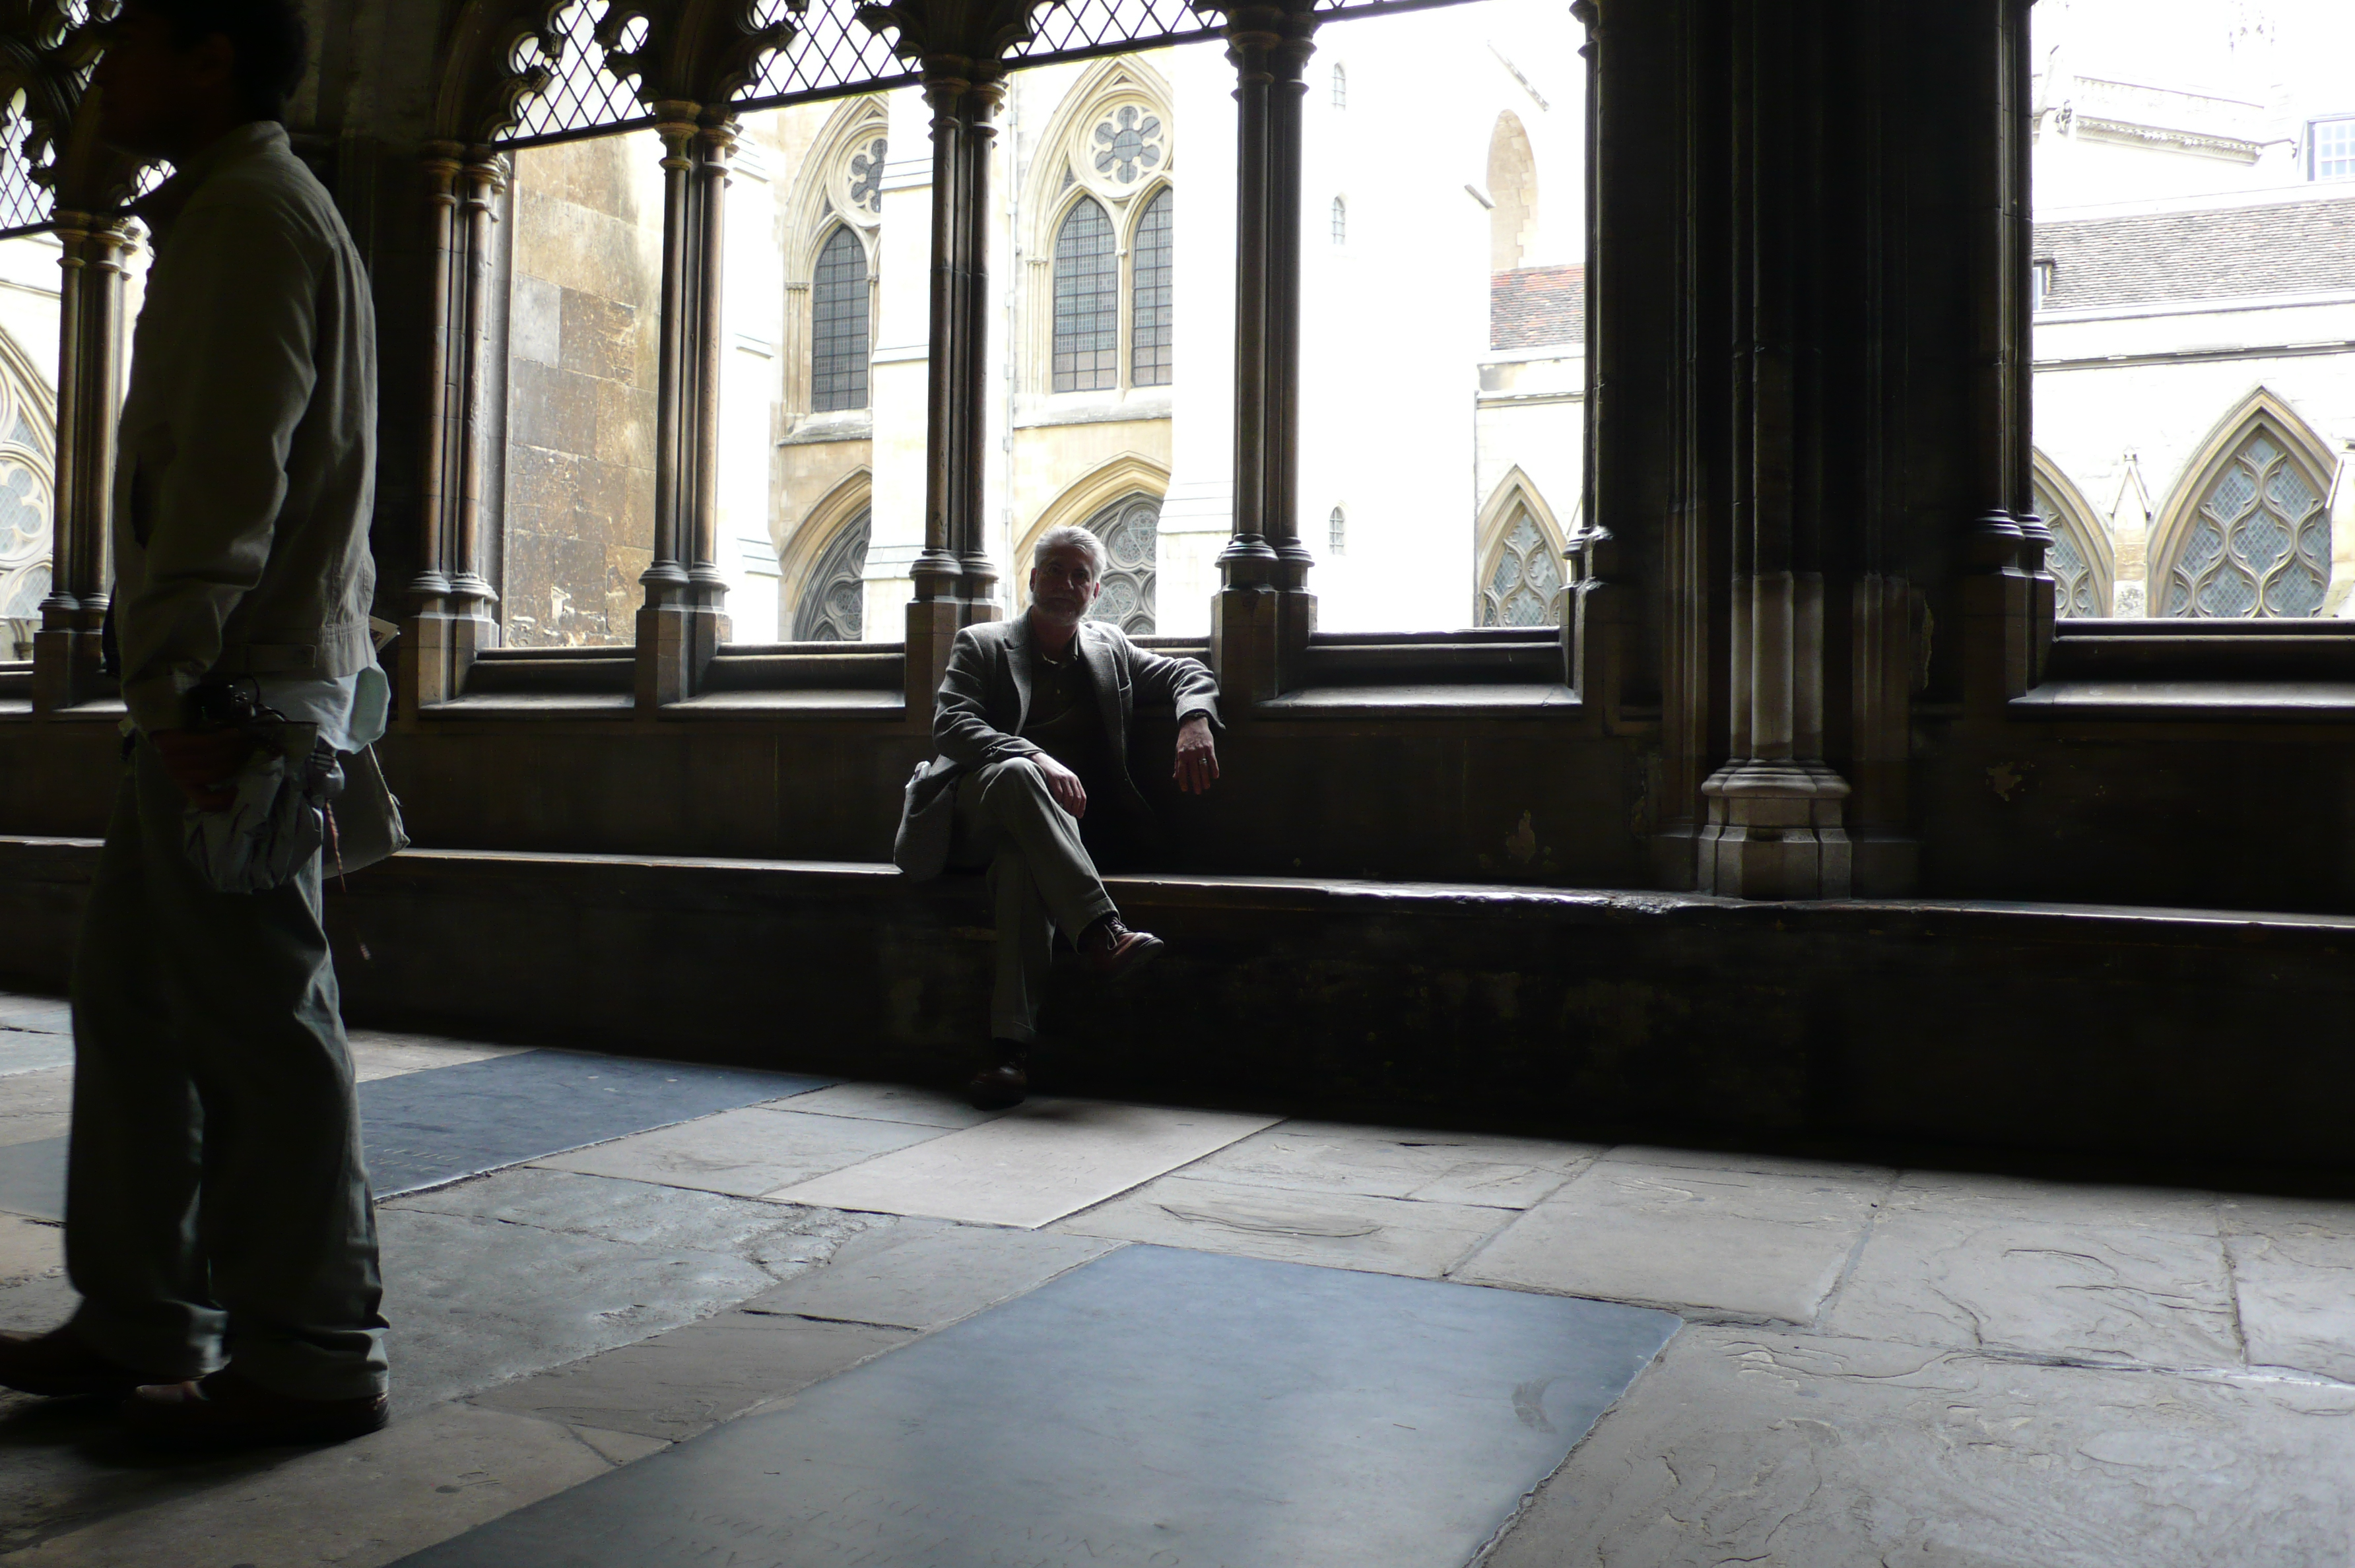 westminster abbey self guided tour